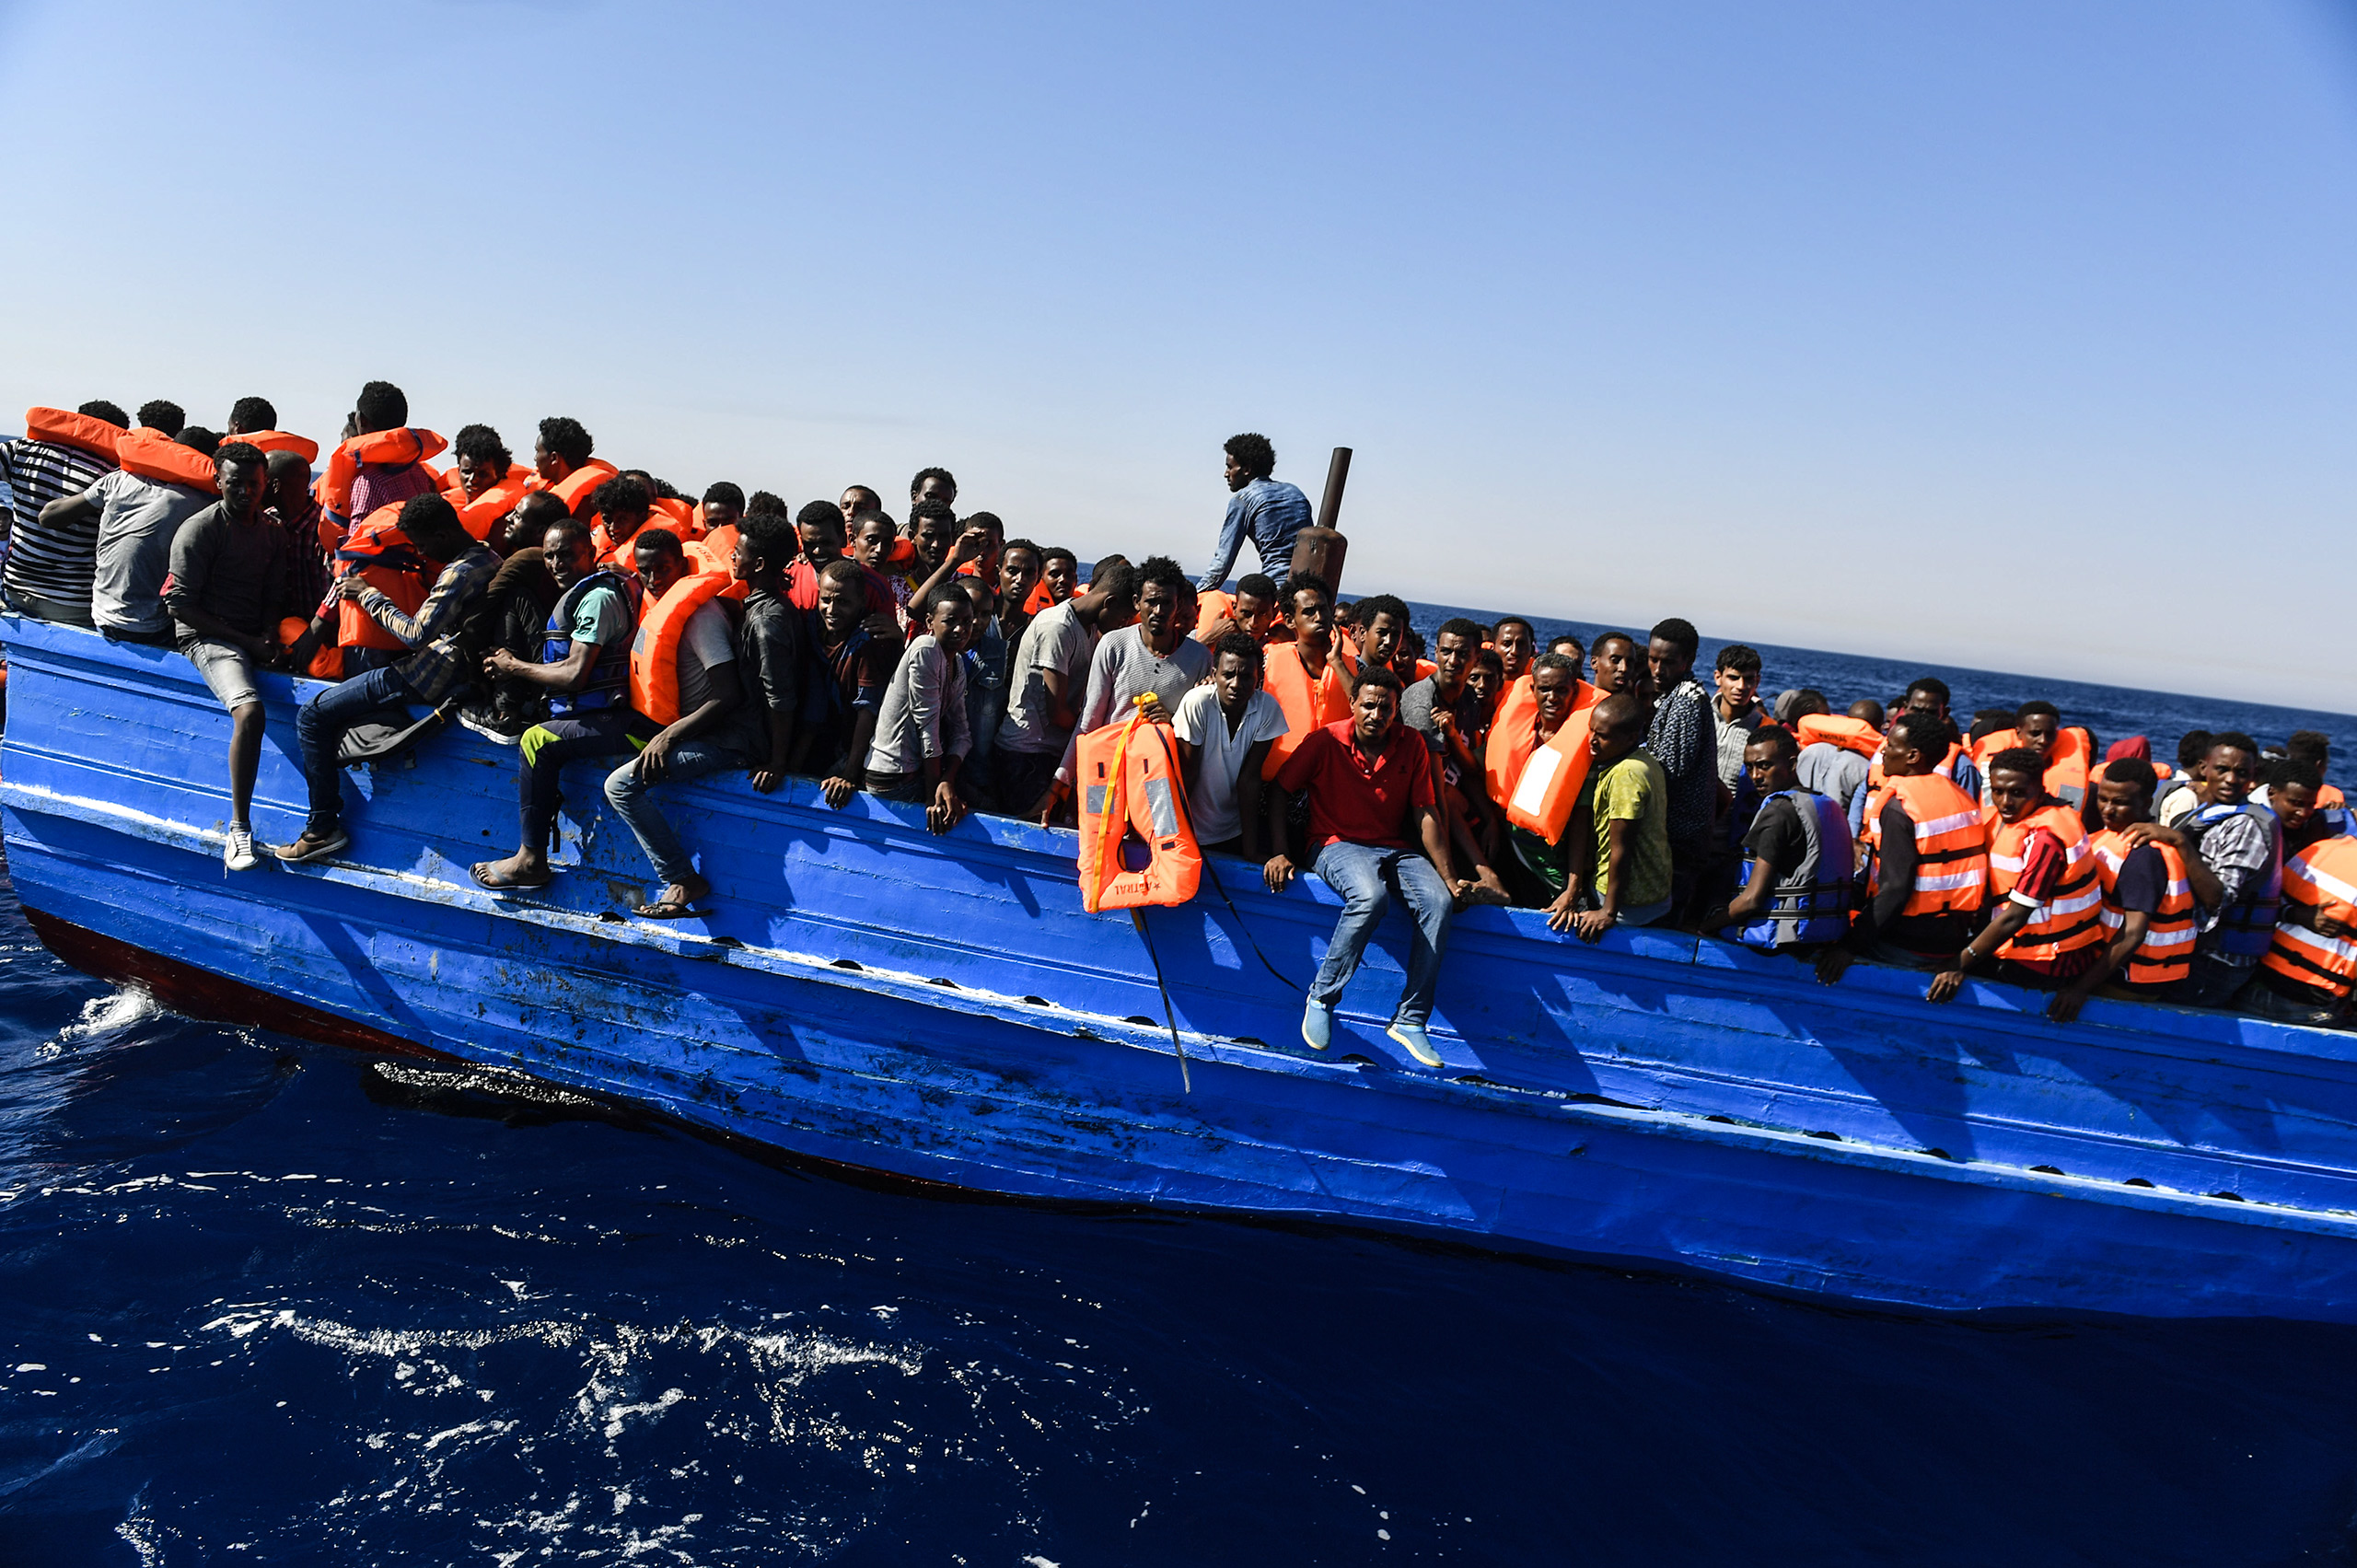 Hundreds of migrants wait to be rescued, as search-and-rescue teams circle the boat, off the coast of Libya, Aug. 21, 2016.From  Migrants' Last Hope: A Rescue on the Mediterranean Sea